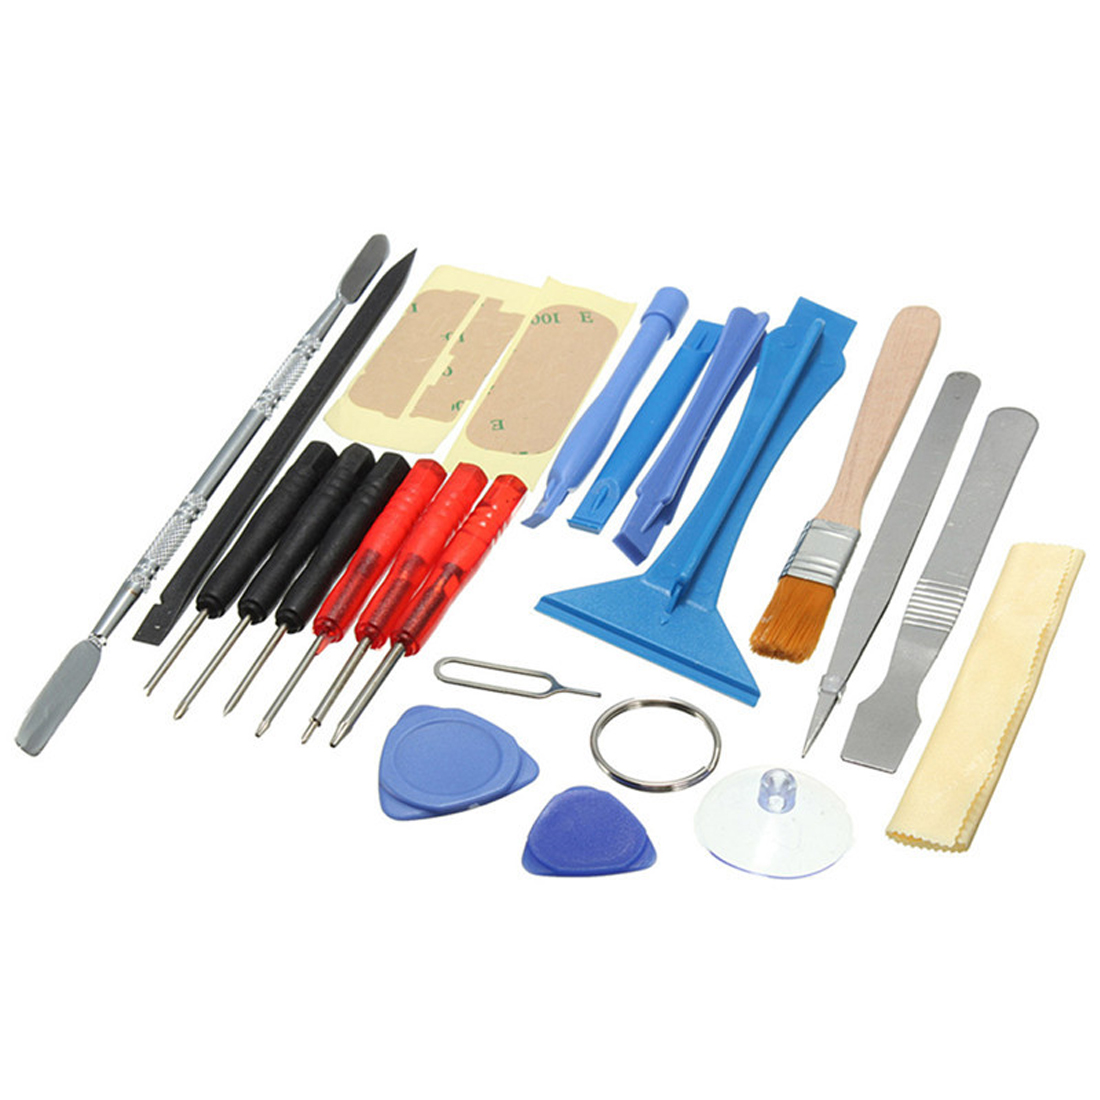 22 In 1 Smart Cell Mobile Phone Opening Pry Repair Tool Kit Torx Screwdrivers Set For IPhone For Samsung Hand Tools Set